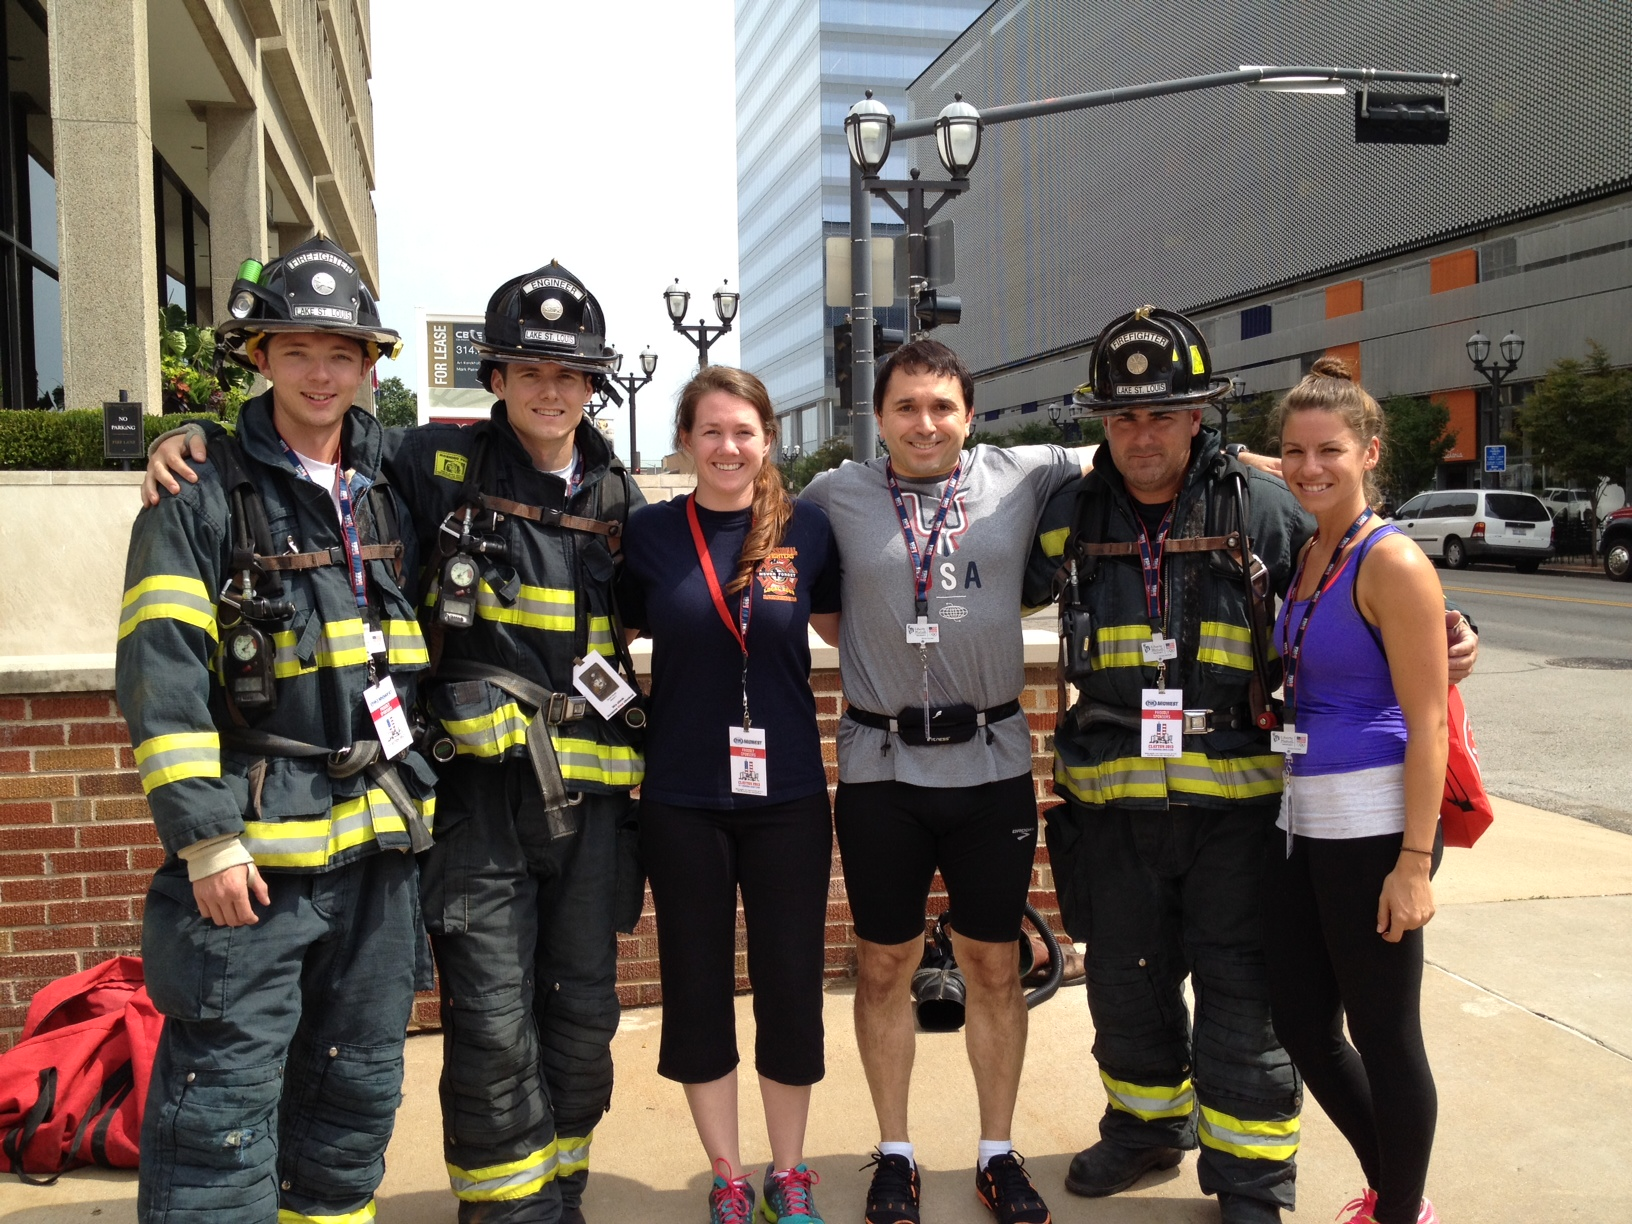 9-11 Memorial Stair Climb Six